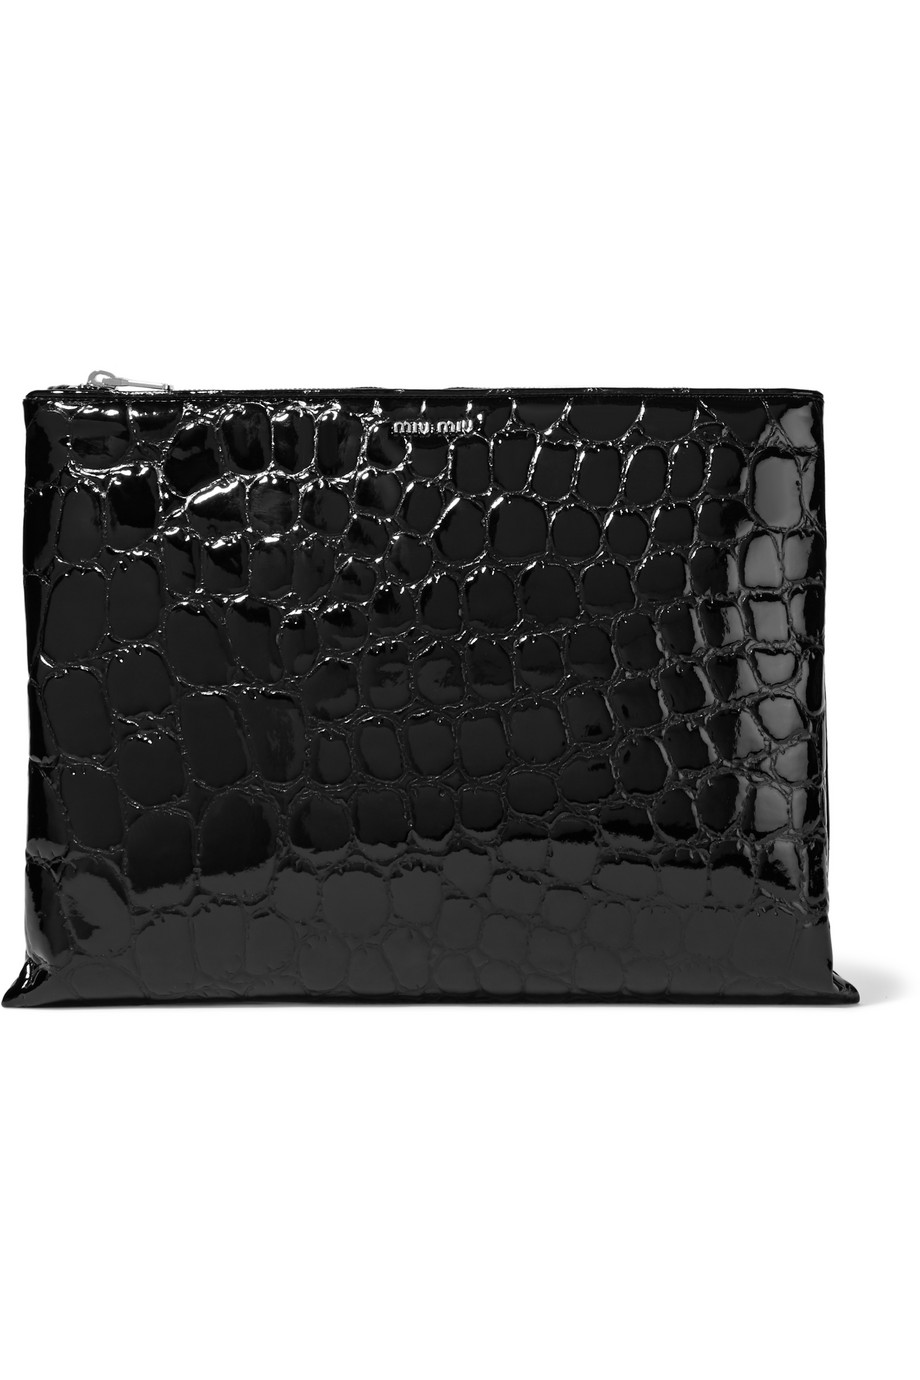 Miu Miu Alligator-Effect Glossed Faux Leather Clutch, Black, Women's